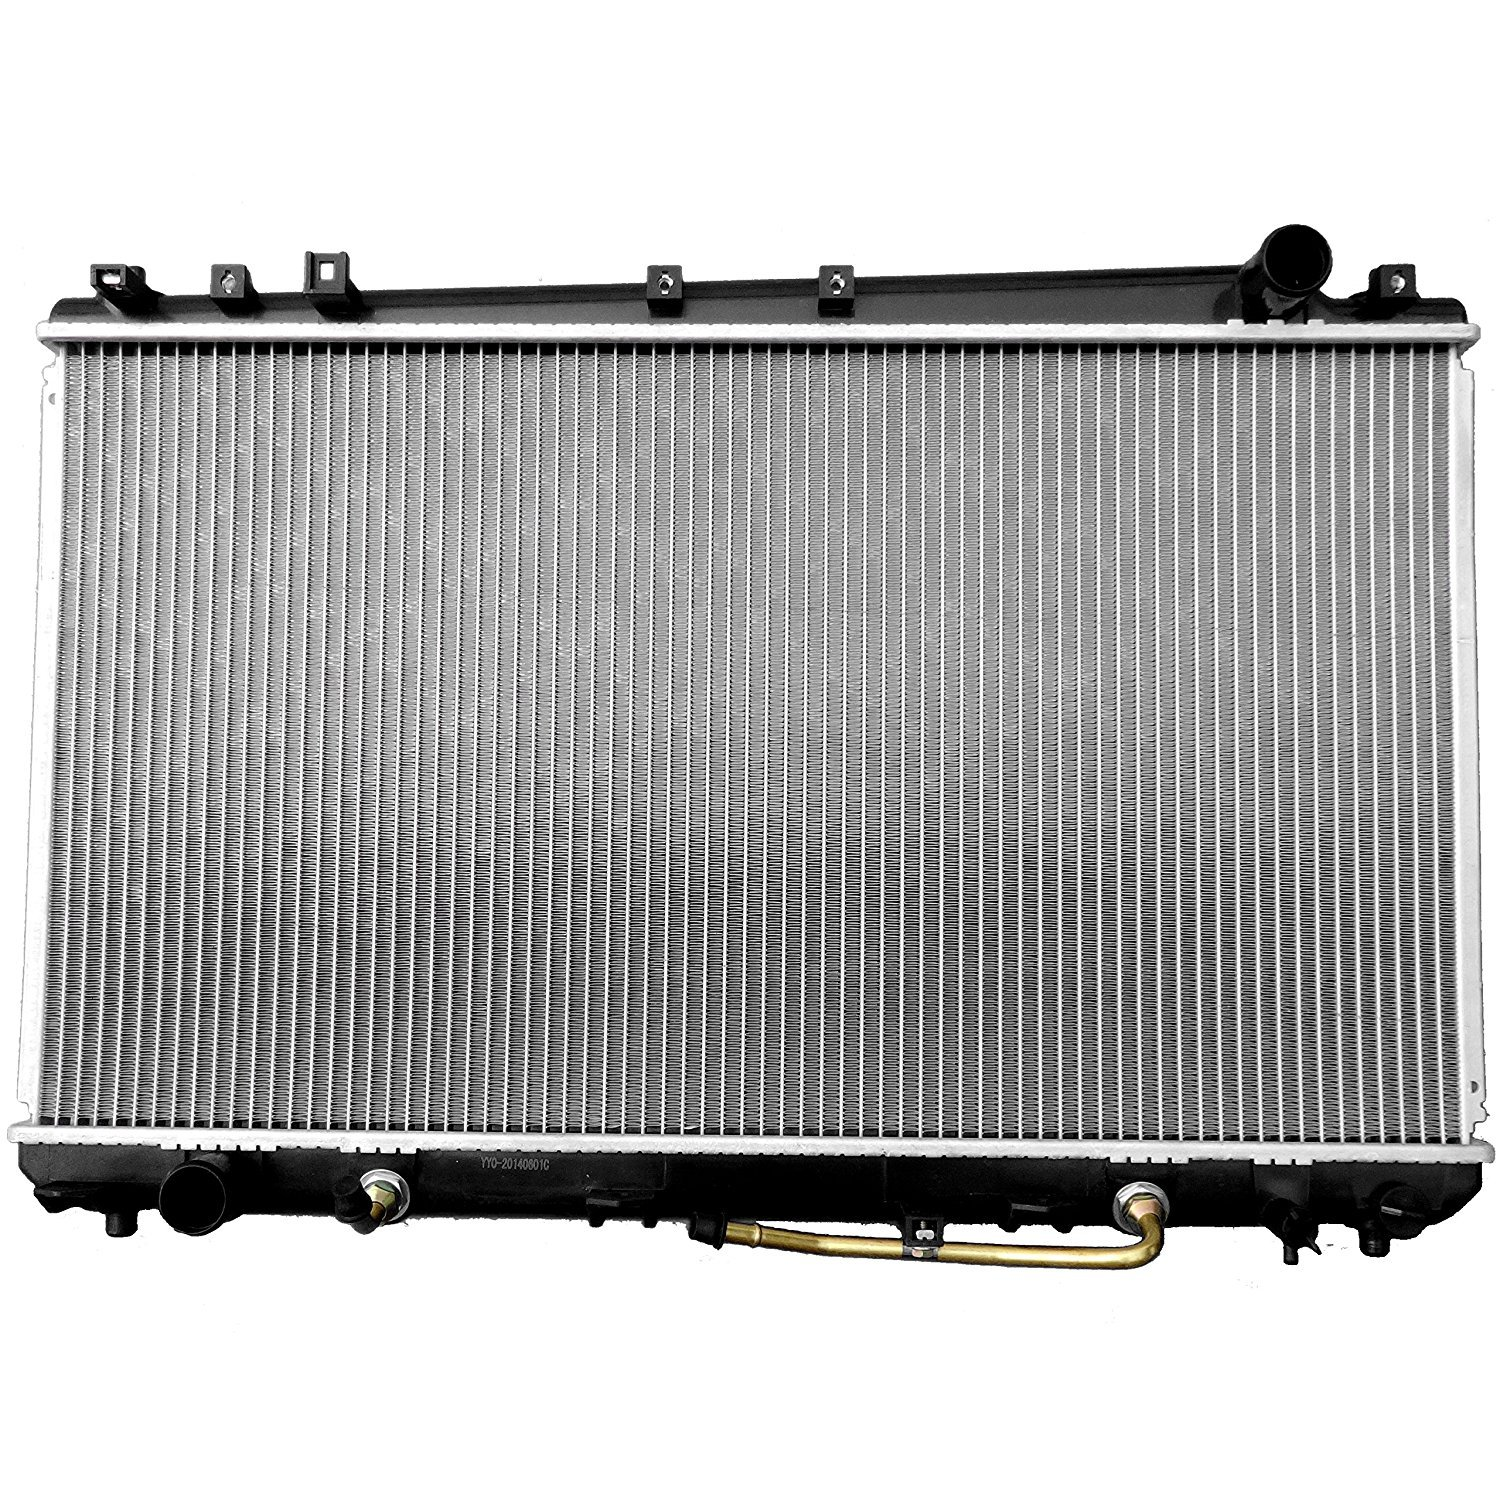 ECCPP Radiator LR2324 for 2001-2004 Toyota Avalon XL/XLD V6 3.0L